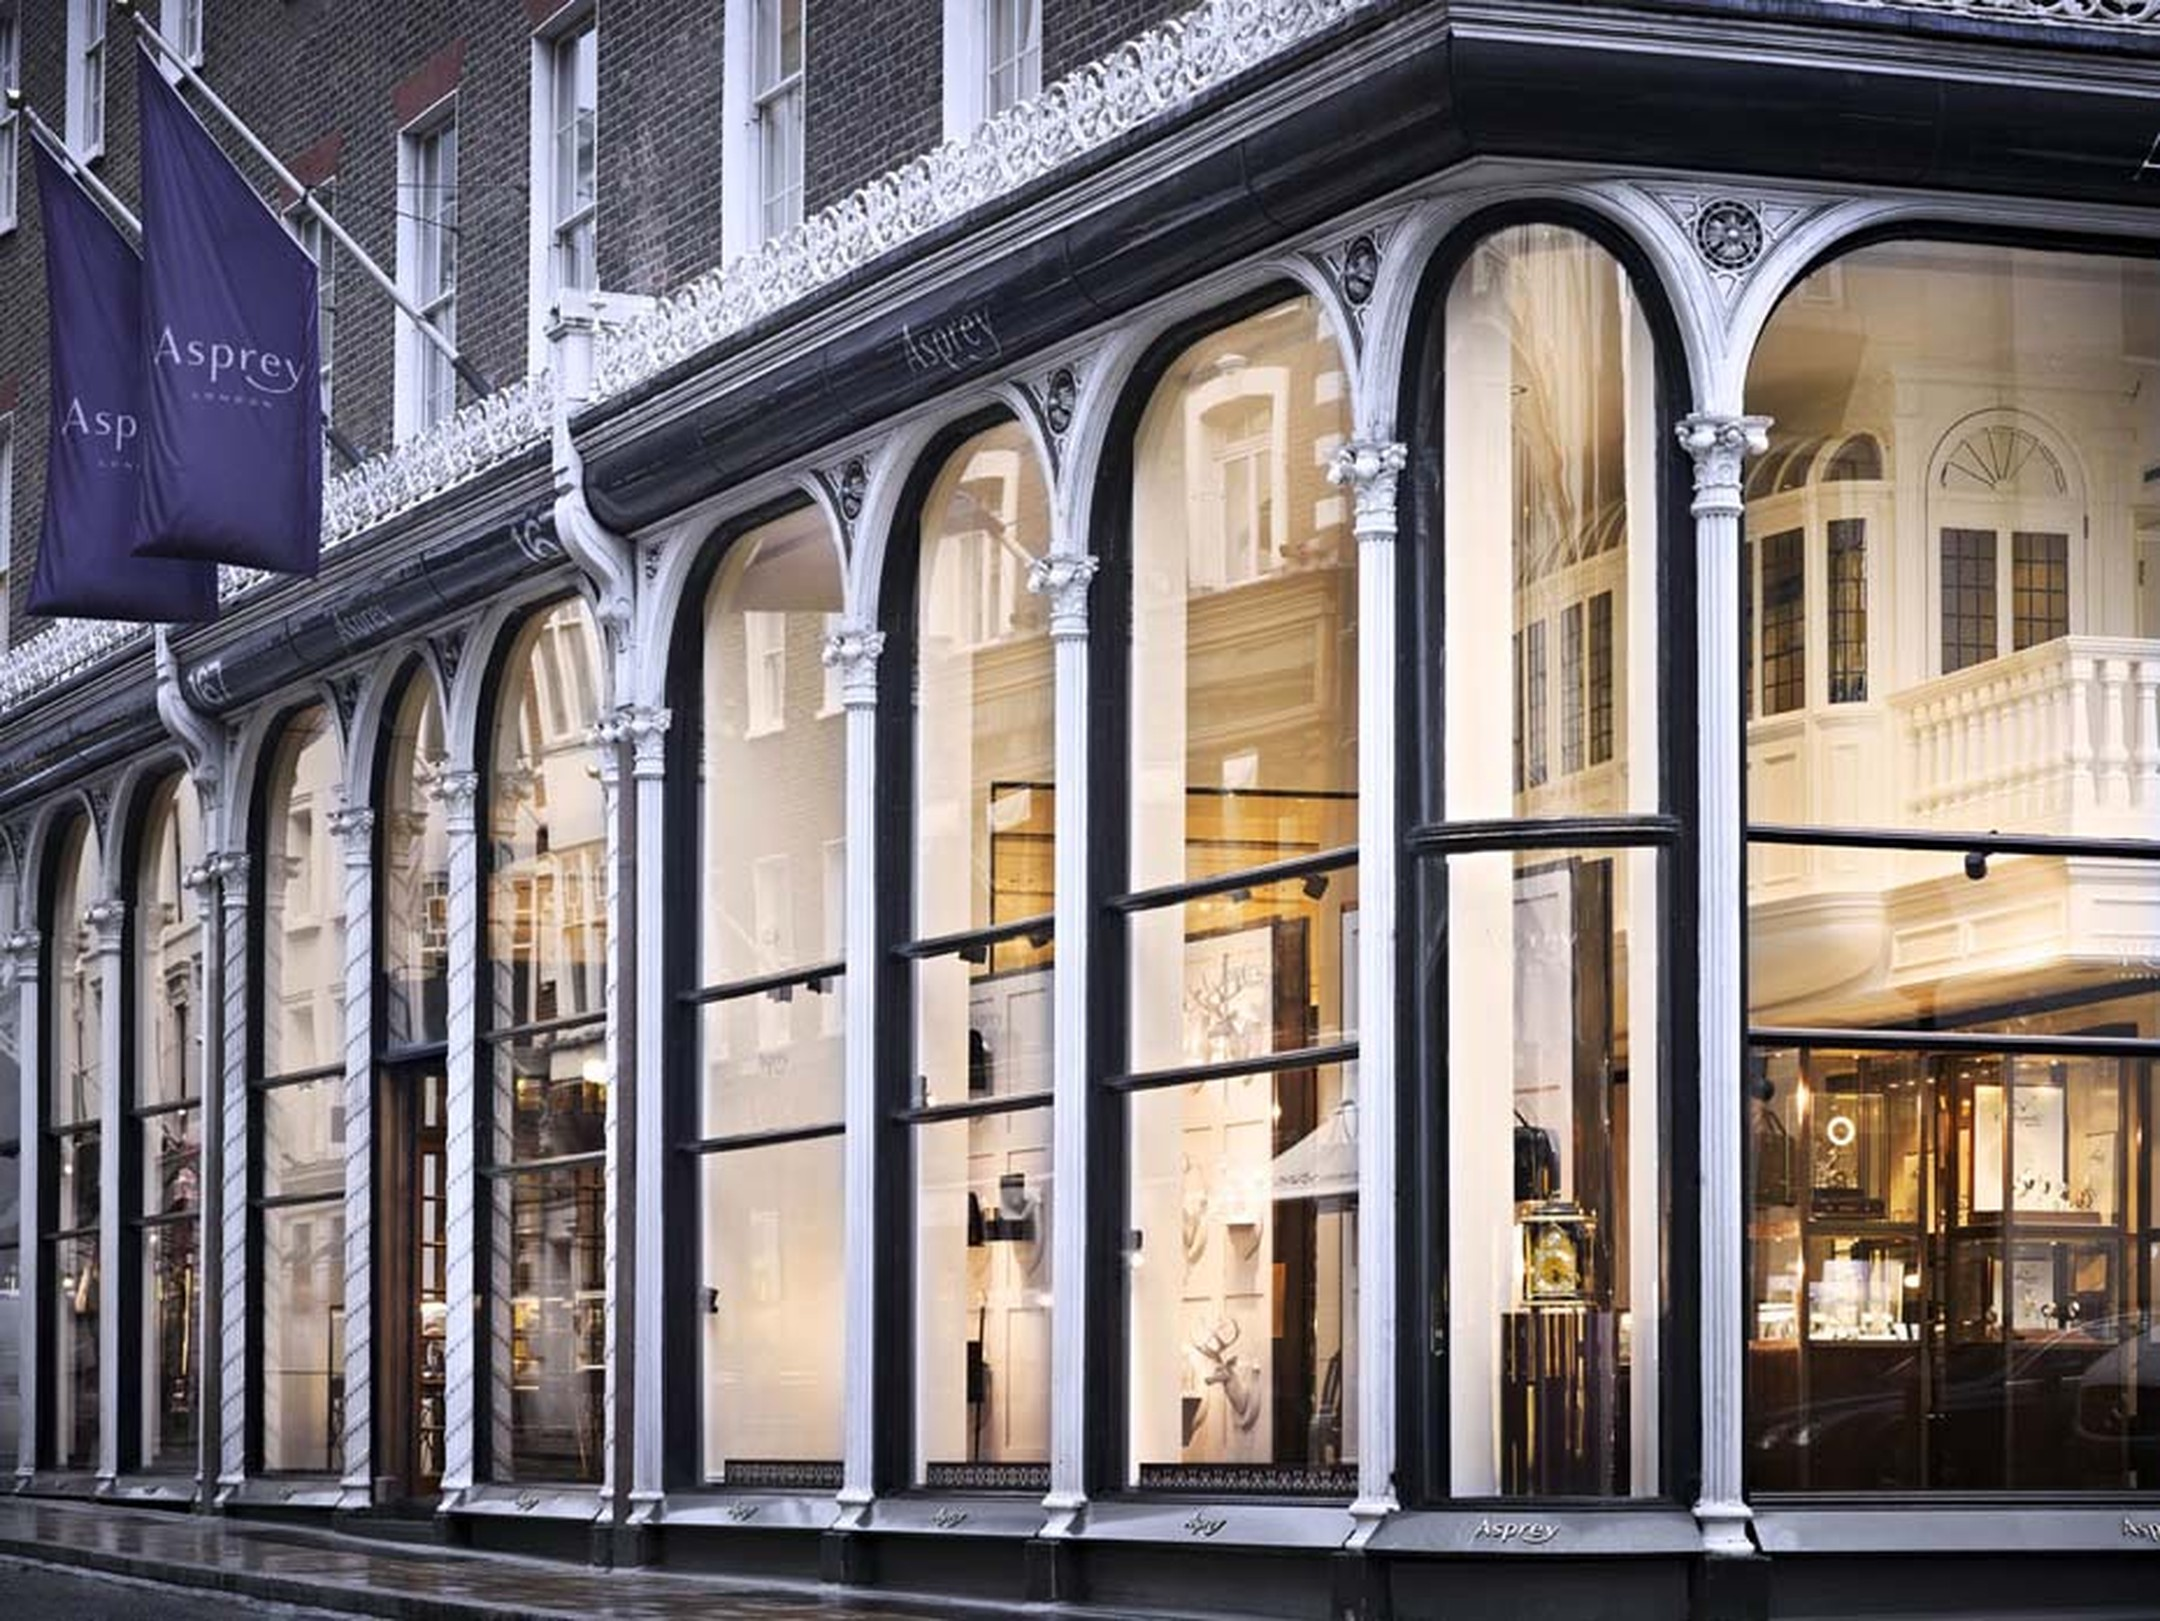 Spread across five Georgian townhouses, Asprey has been based at the New Bond Street premises for 160 years.